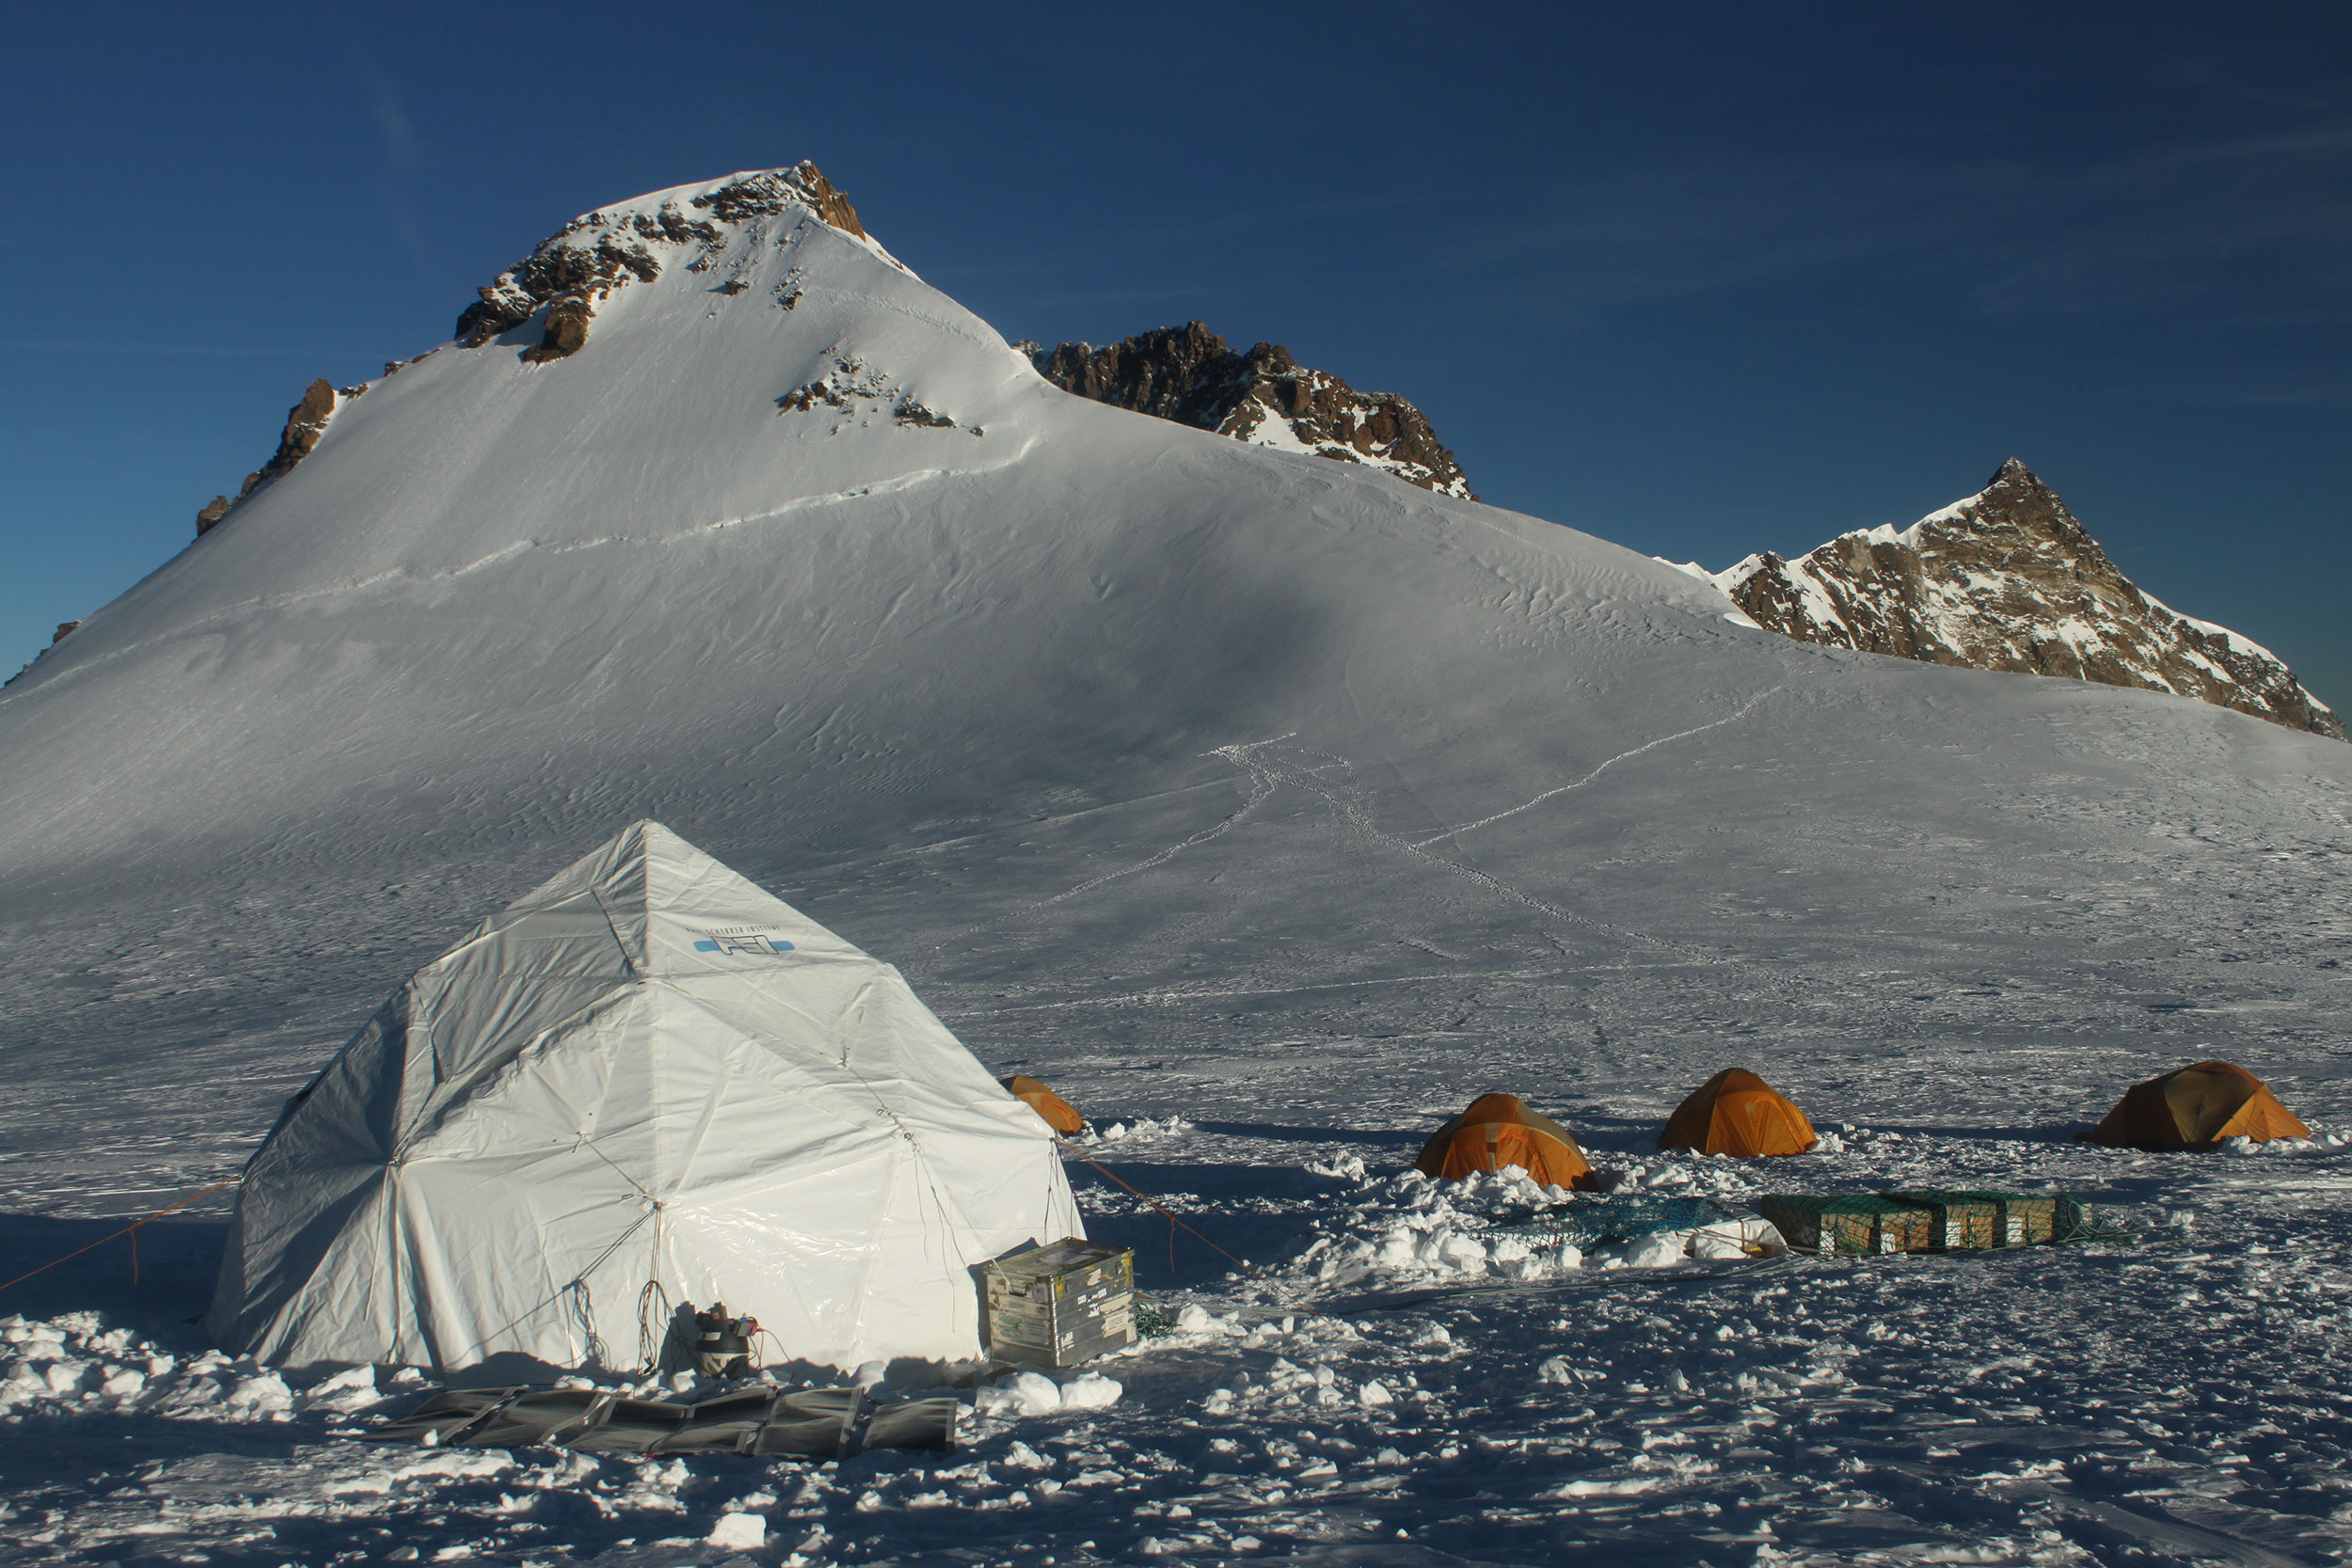 The researchers' camp in 2015 on the Colle Gnifetti, southeast of Zermatt. Here the research team took several ice cores up to 82 metres long in 2003 as well as 2015. (Photo: Paul Scherrer Institute/Michael Sigl)